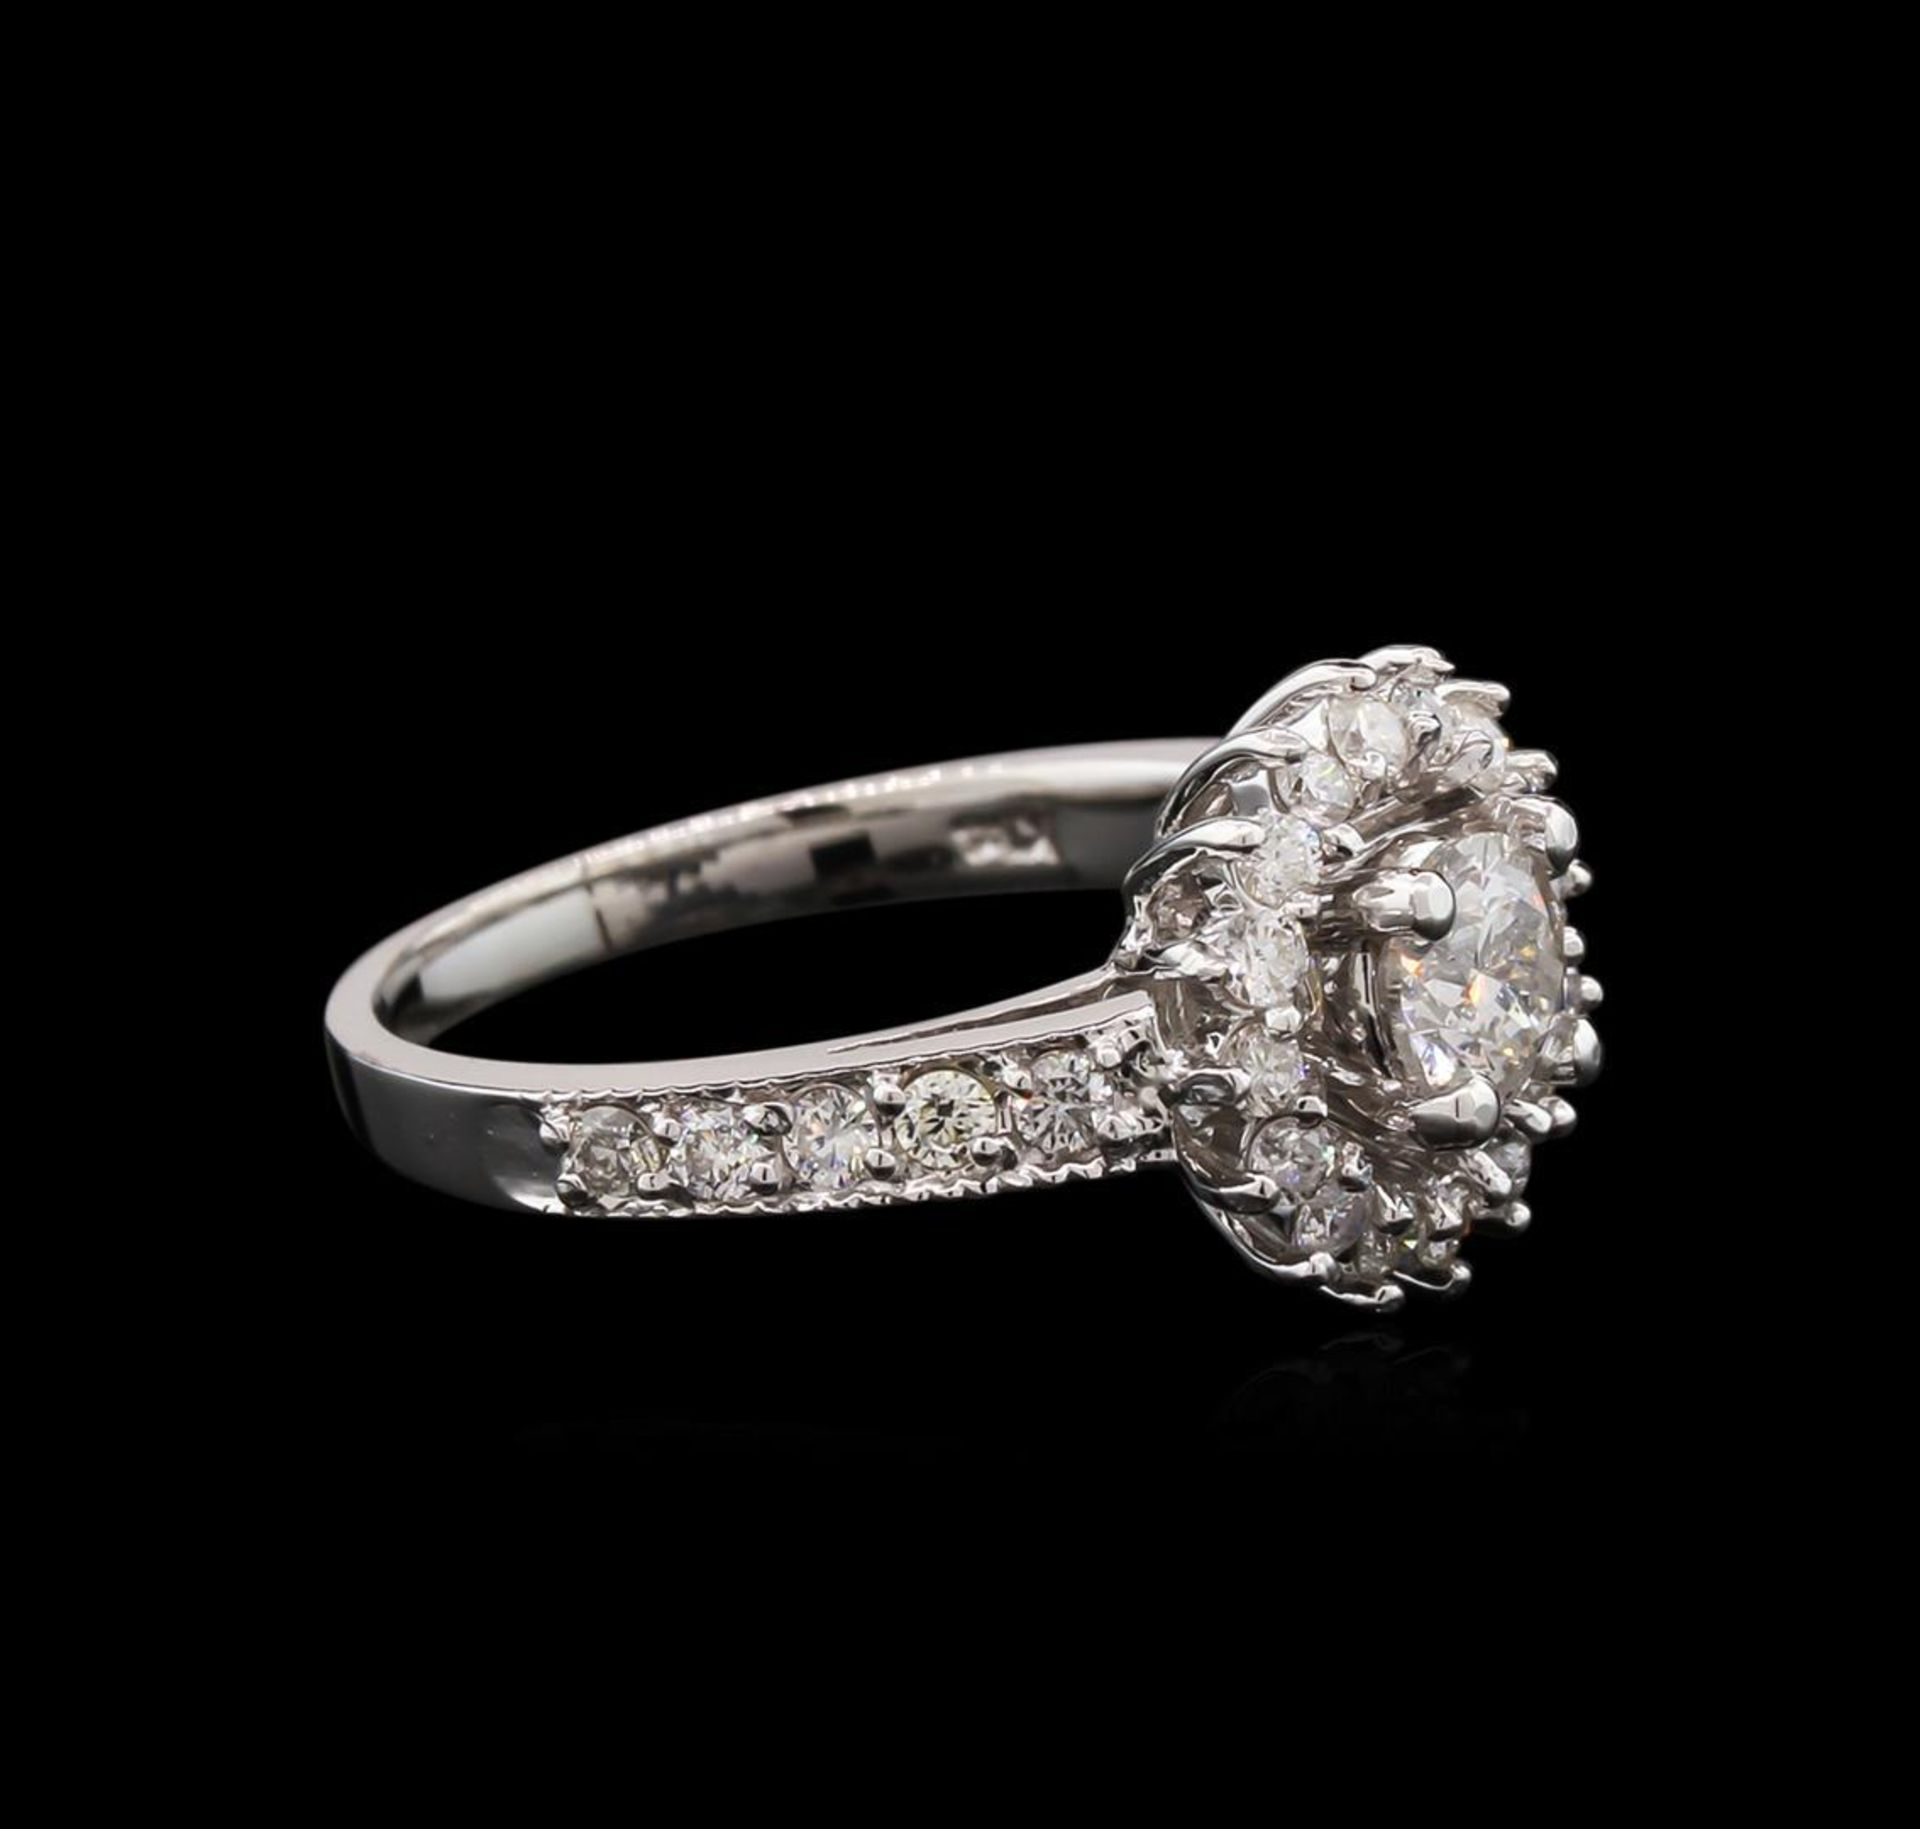 1.04ctw Diamond Ring - 14KT White Gold - Image 2 of 3